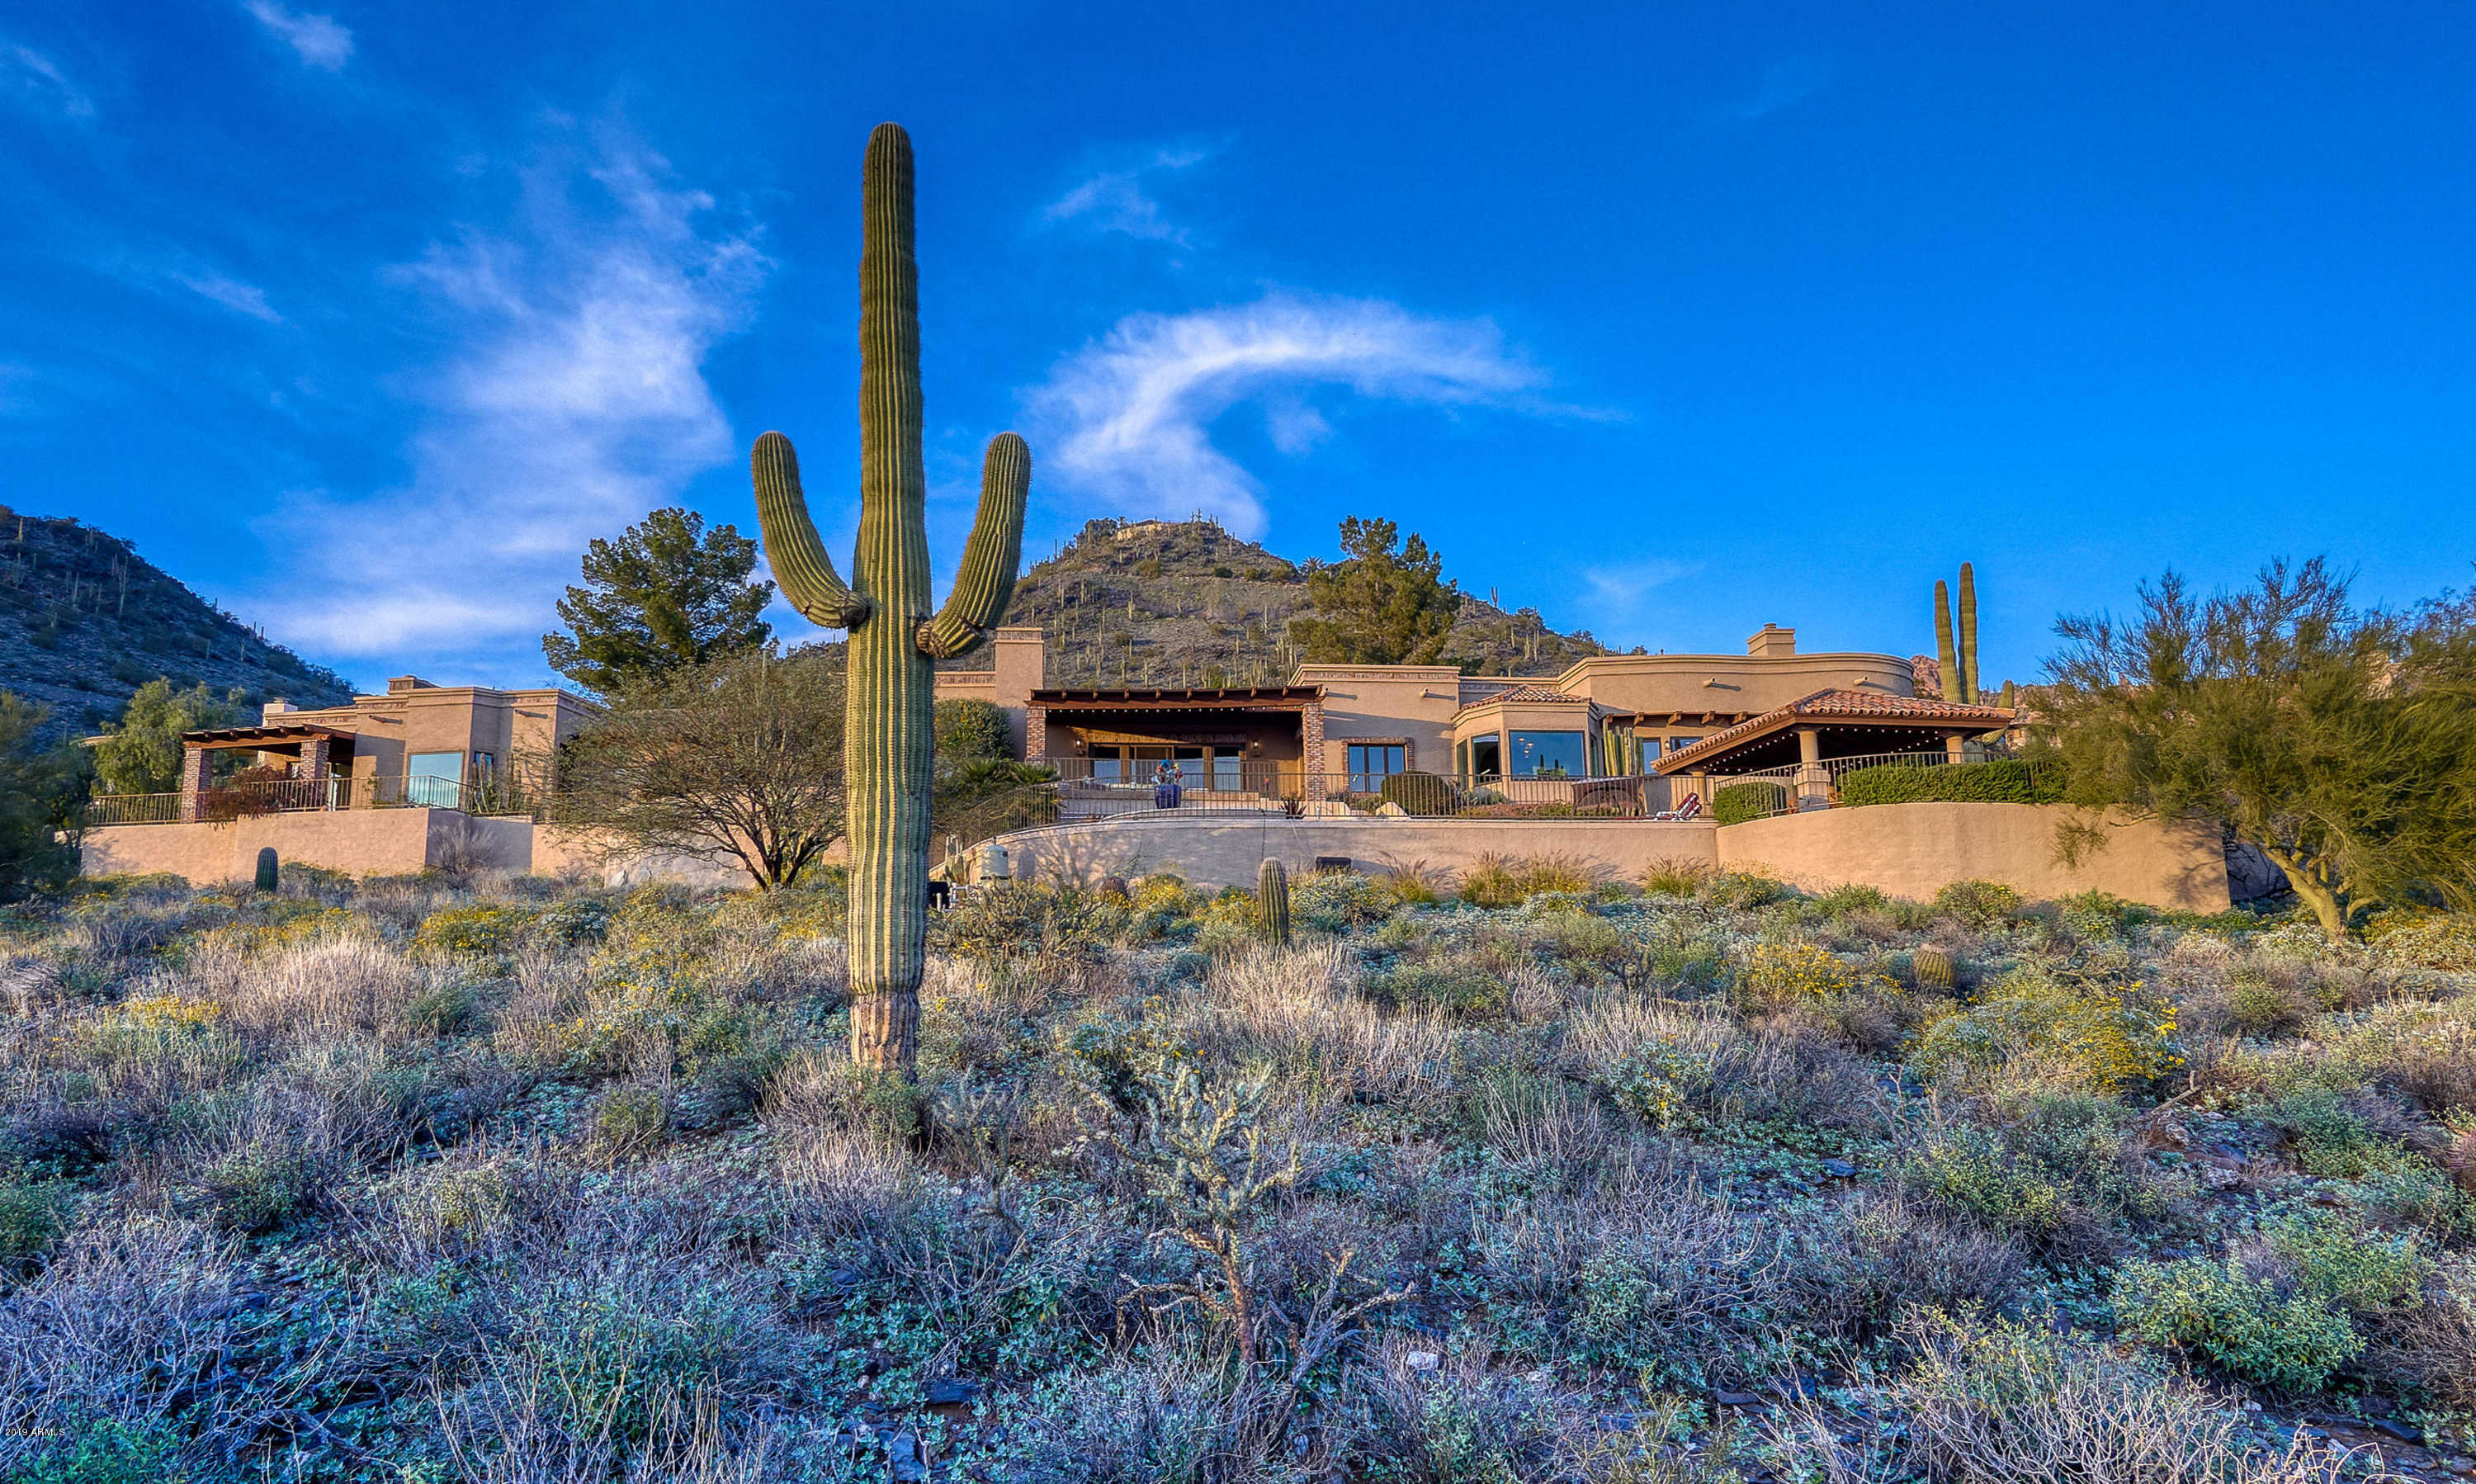 $2,150,000 - 4Br/5Ba - Home for Sale in Carefree Grand View Estates 2 Lot 23-40, Carefree